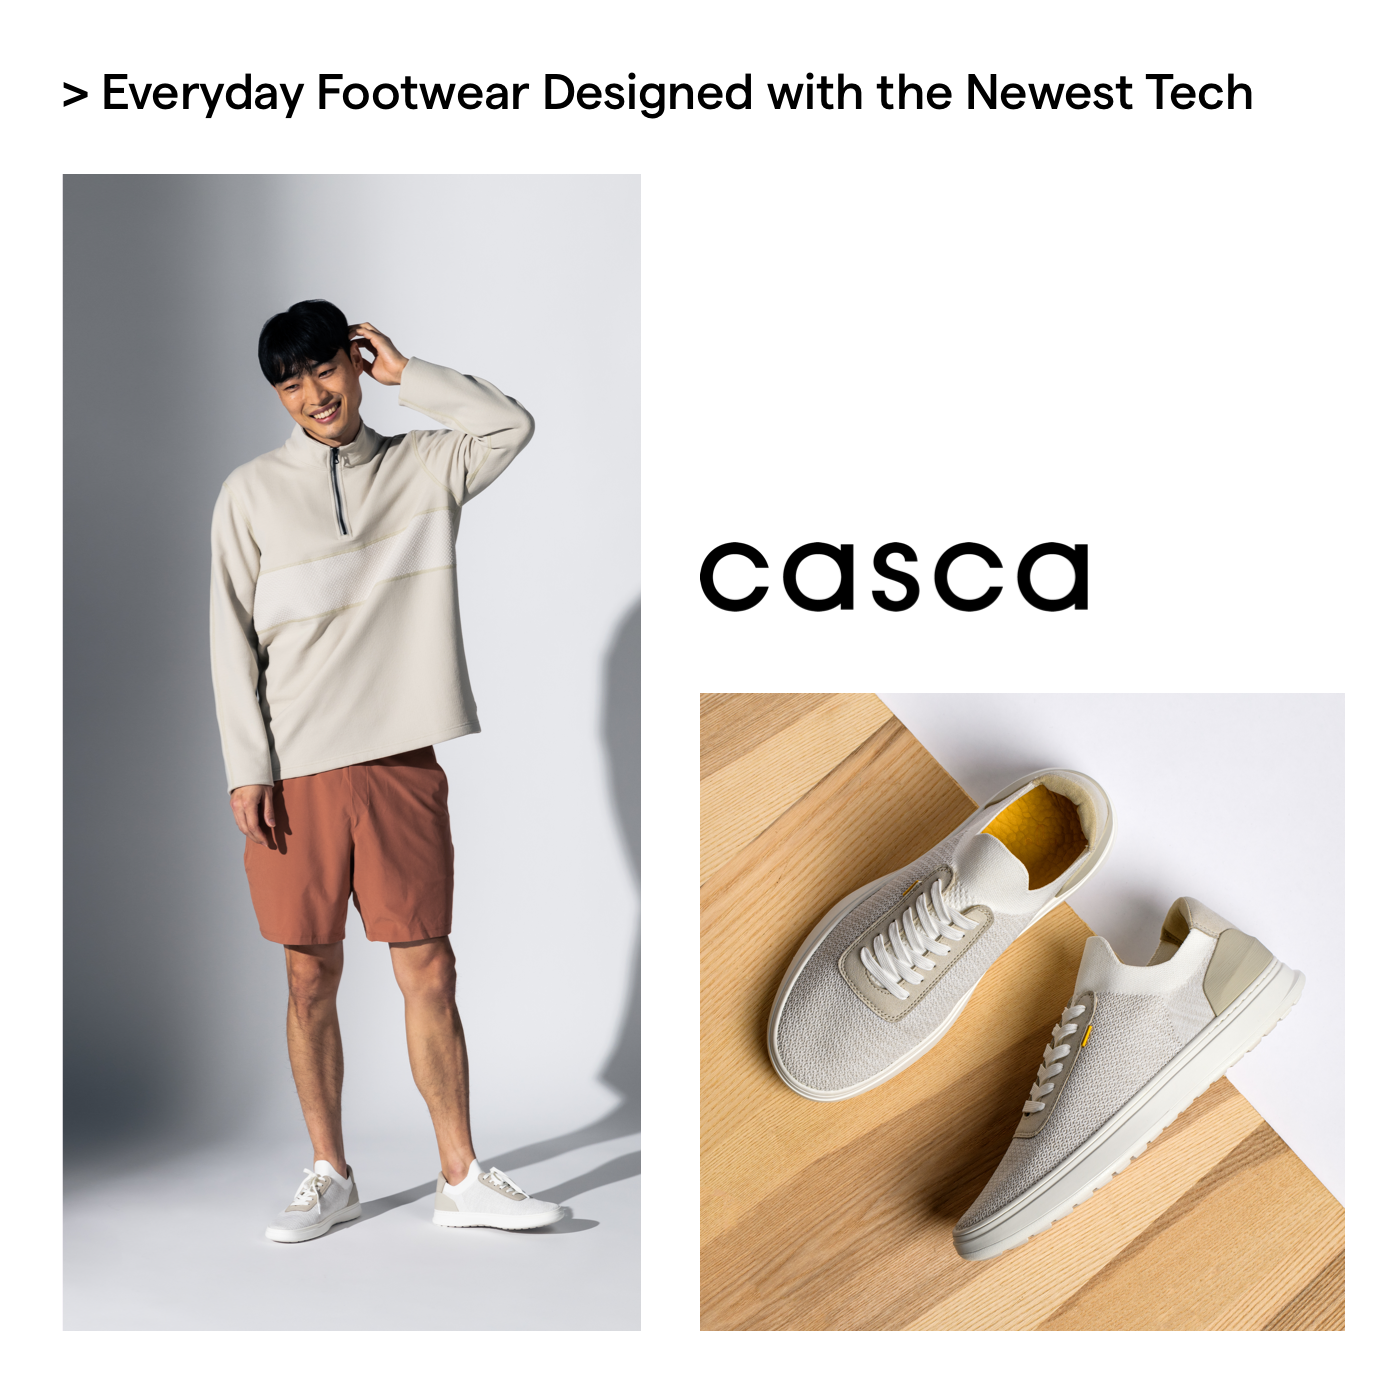 Casca shoes design forward father's day gift guide